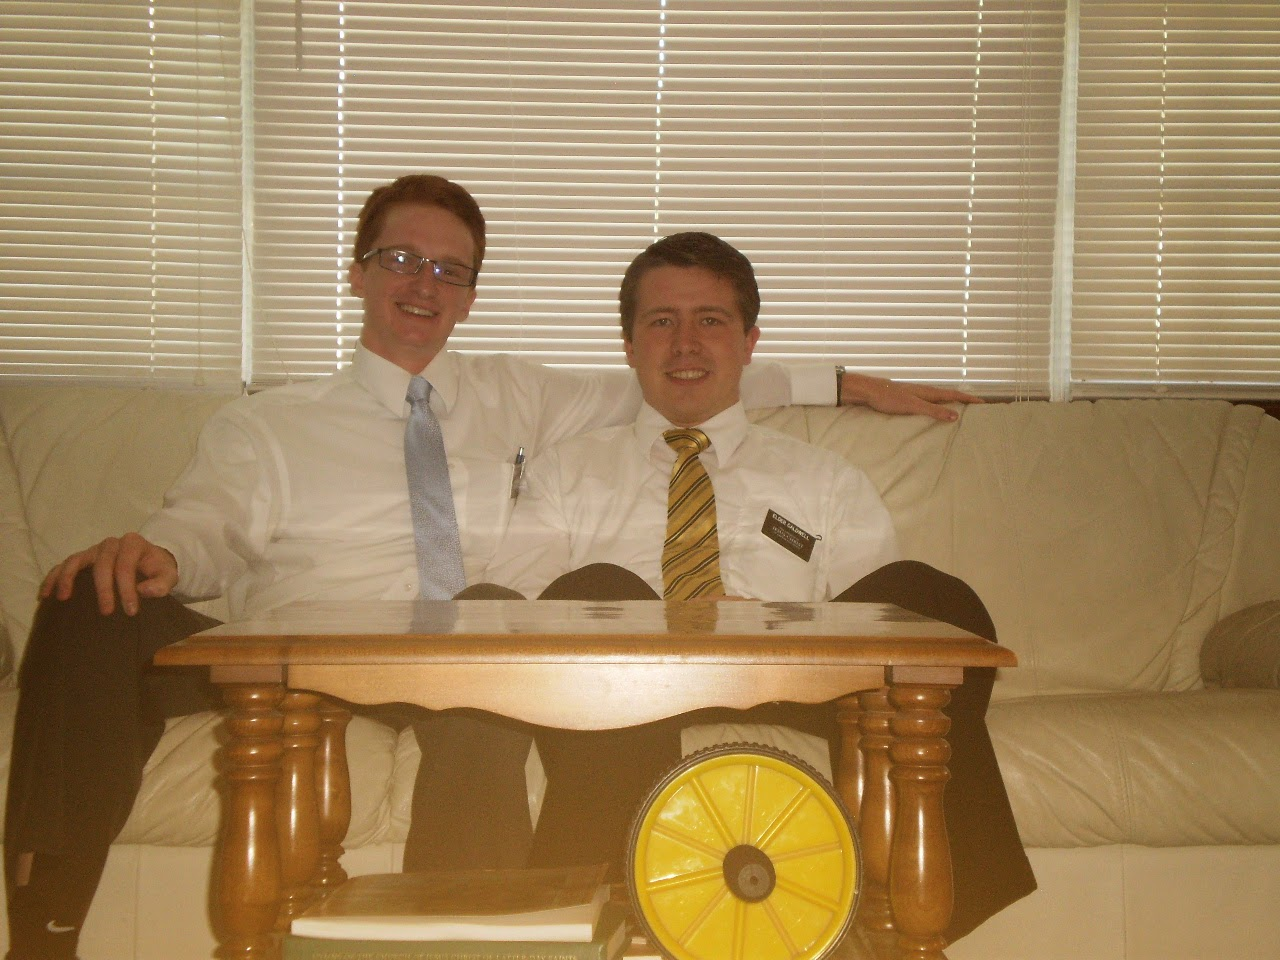 Elder Holyoak & Me